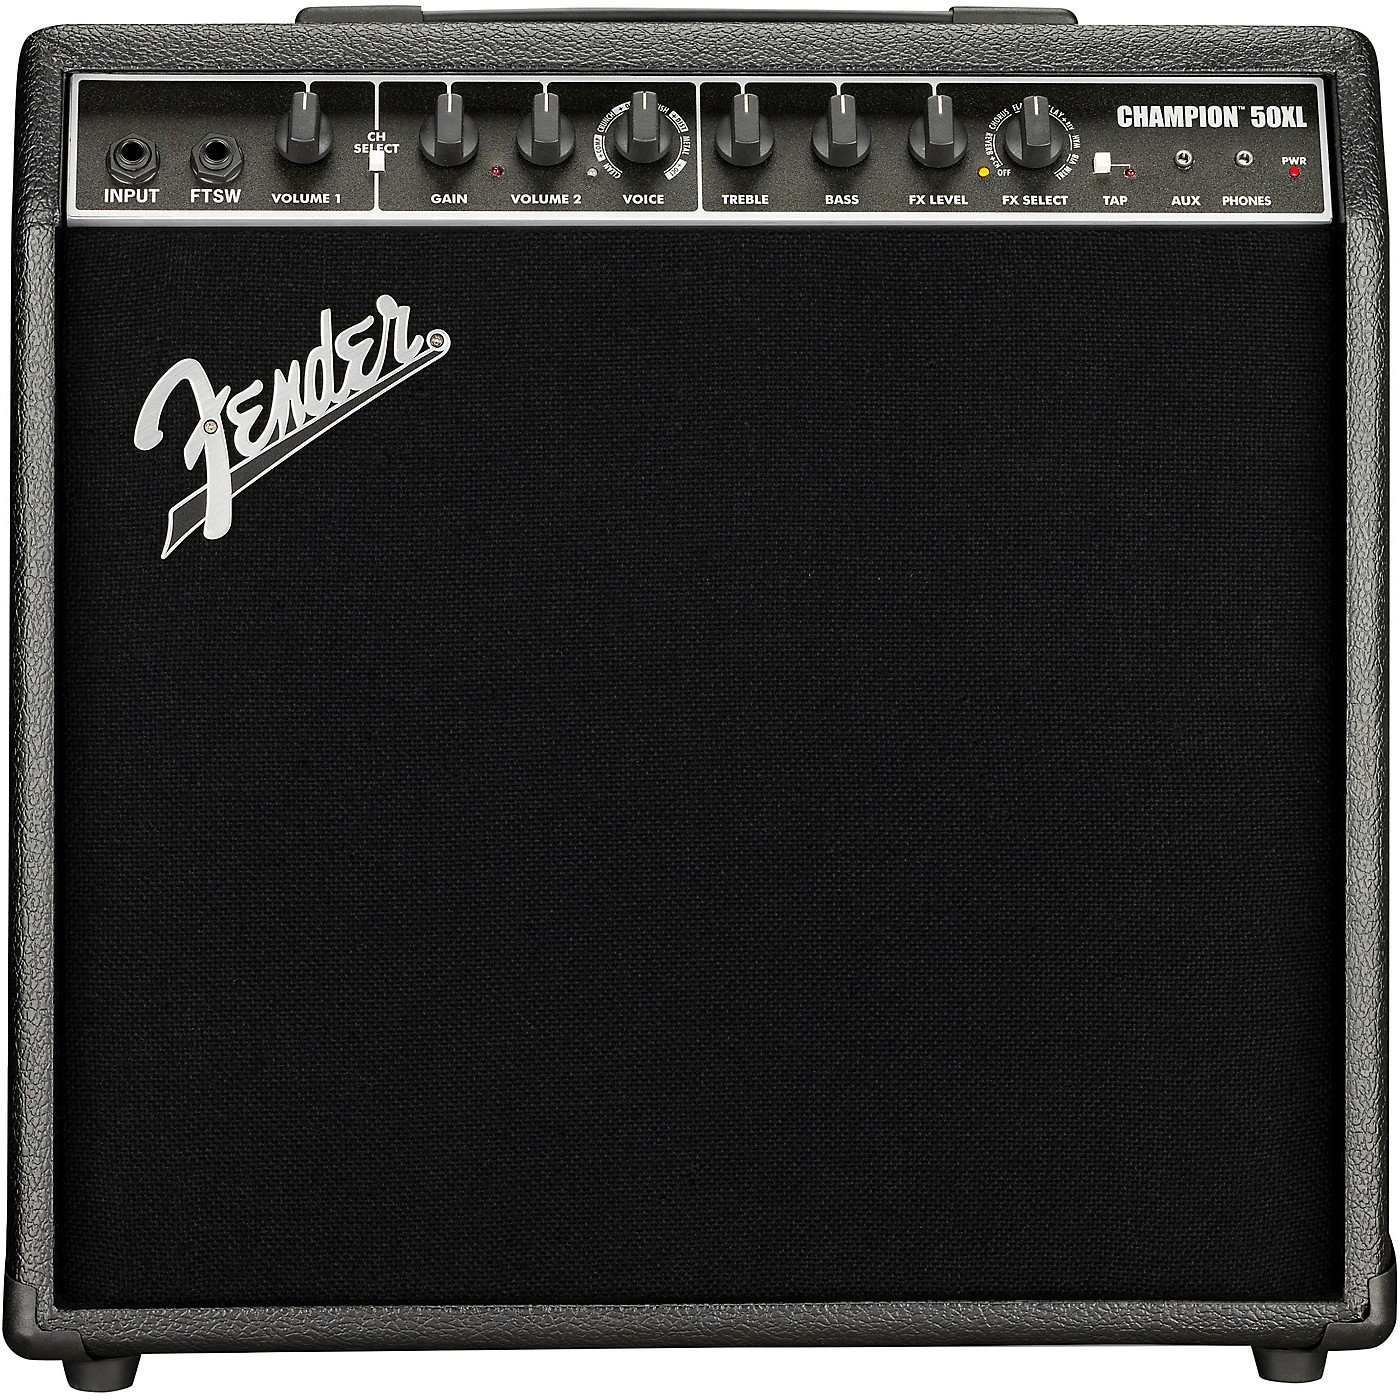 Fender Champion 50XL 50W 1x12 Guitar Combo Amp thumbnail